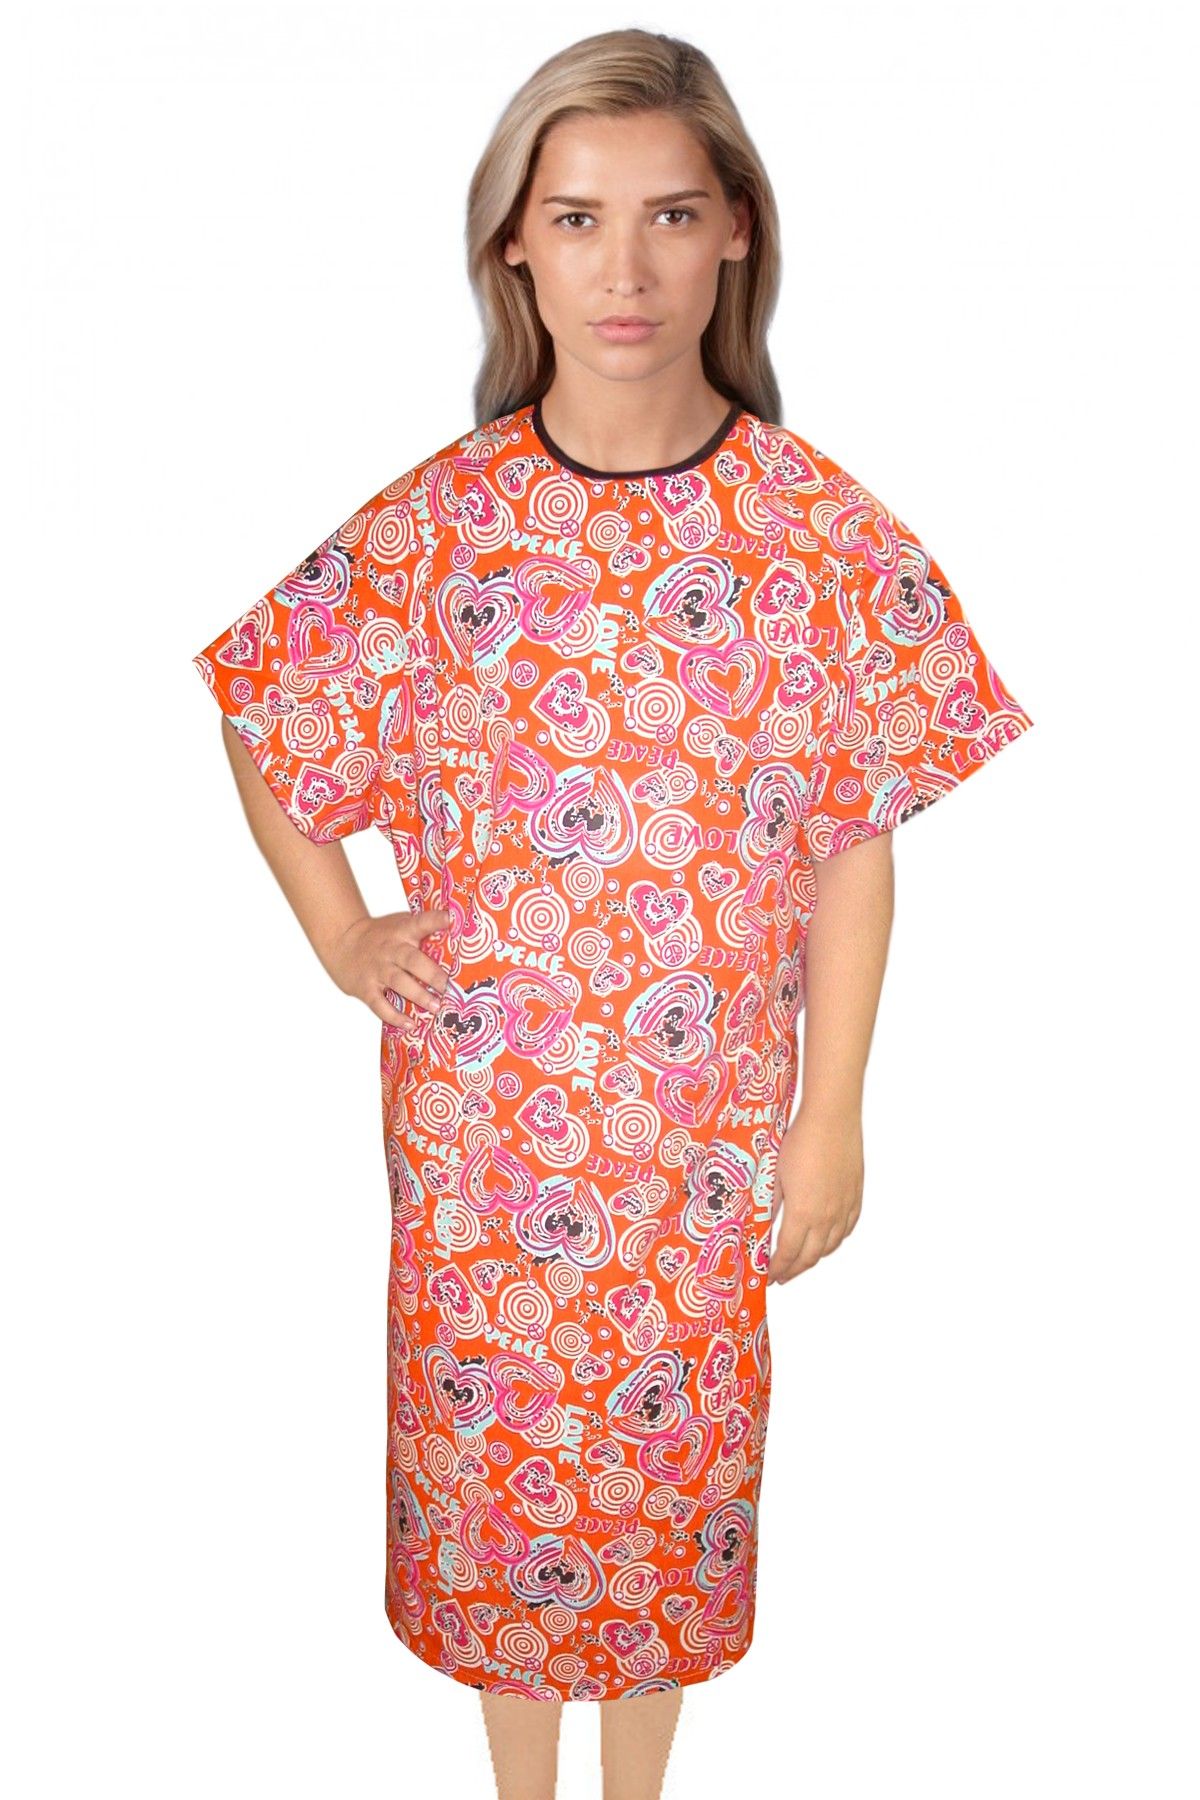 PATIENT GOWN HALF SLEEVE PRINTED OPEN, TIE-ABLE FROM TWO POINTS LOVE PEACE ORANGE Chest 54 Inches Length 45 inches $5.75 and Chest 80 inches Length 49 inches $8.75